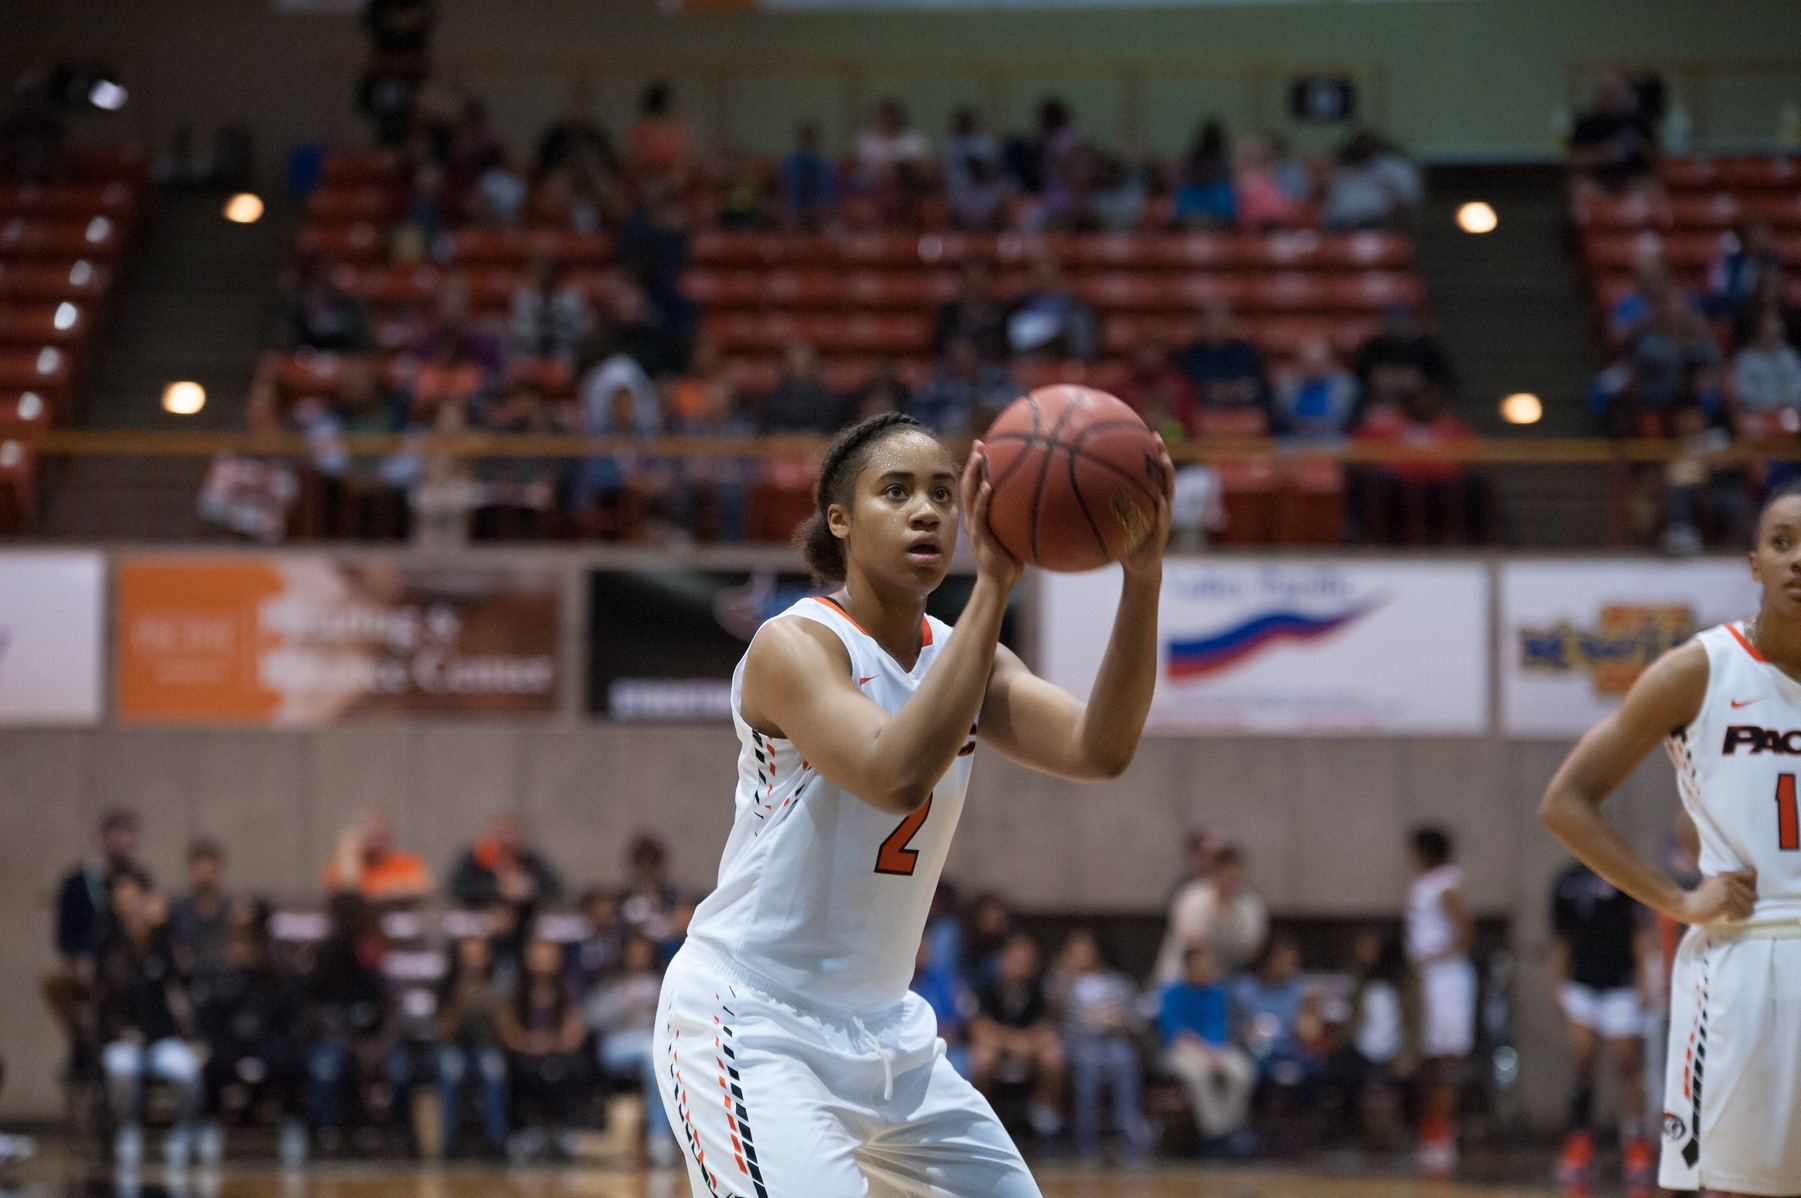 Jenelle Grant scores 16 points in the exhibition against William Jessup